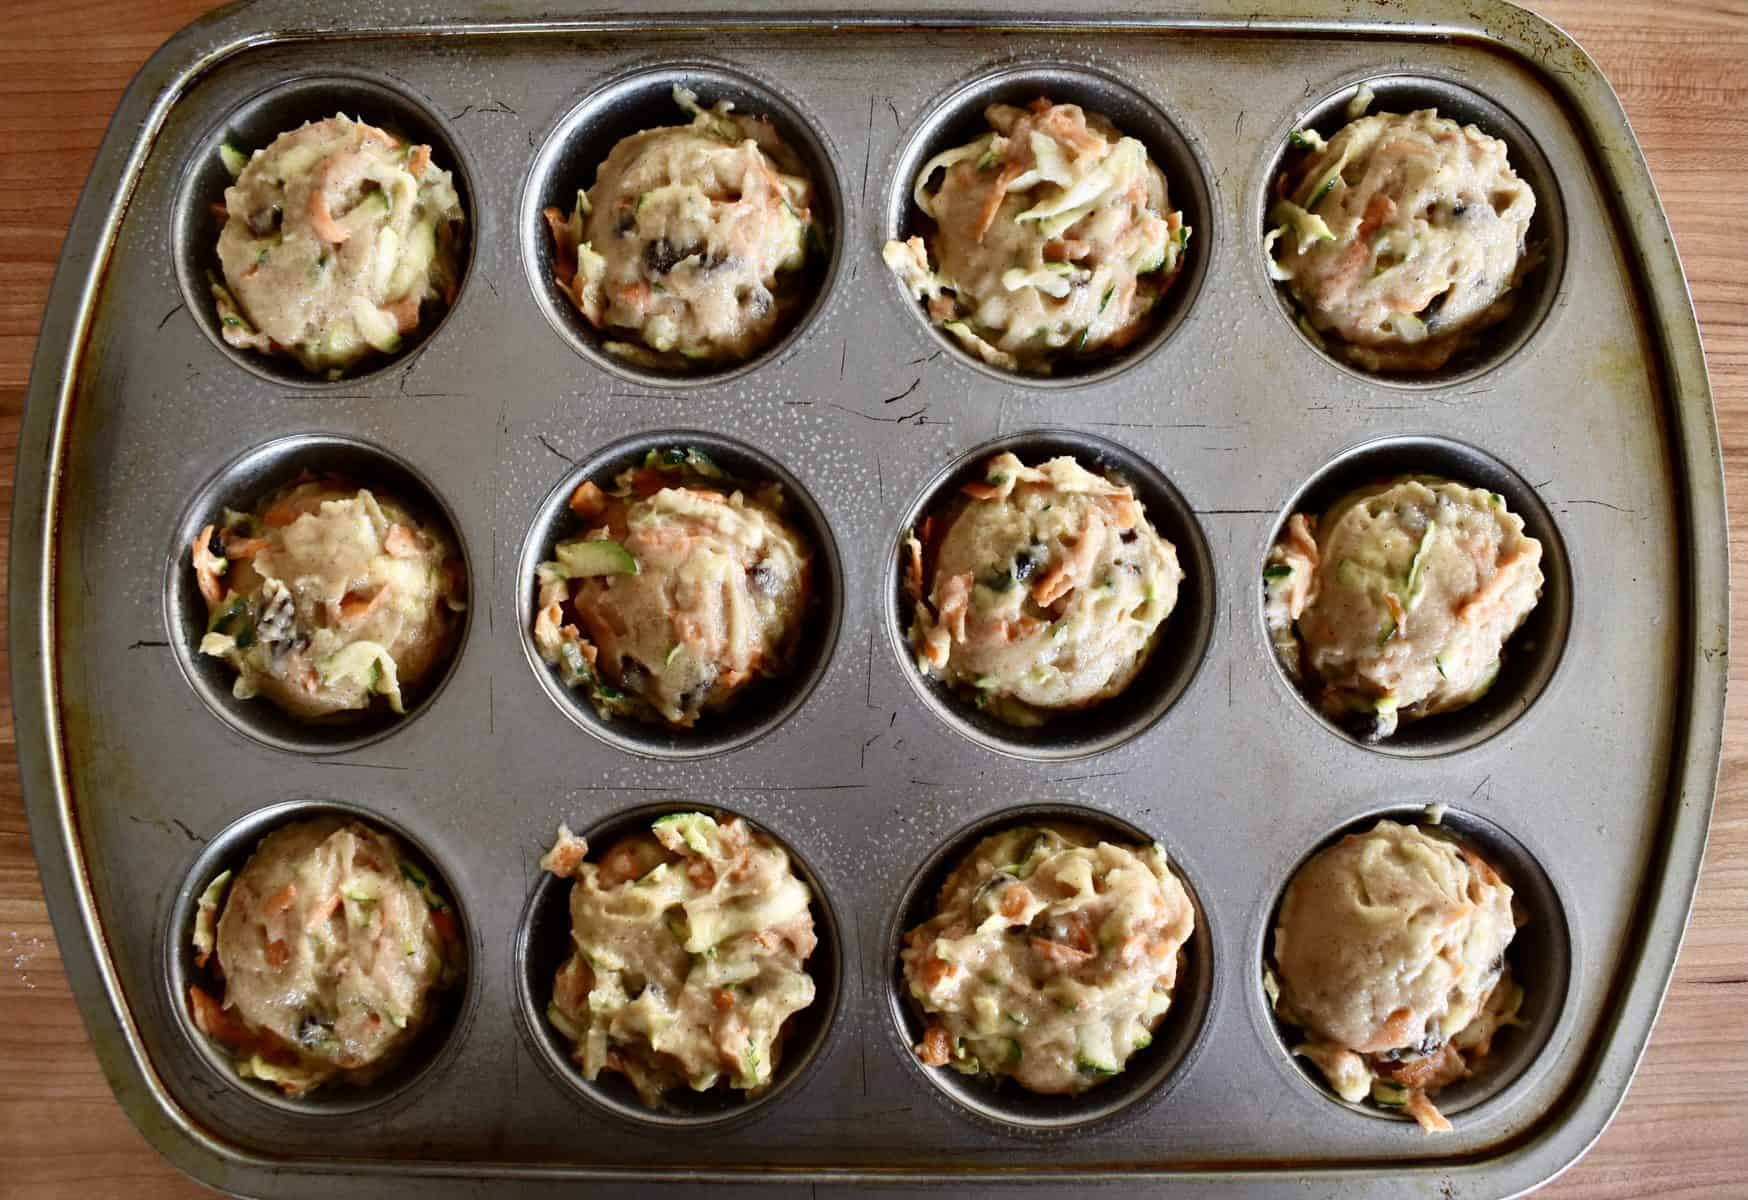 muffin tins filled with zucchini carrot raisin muffin batter.